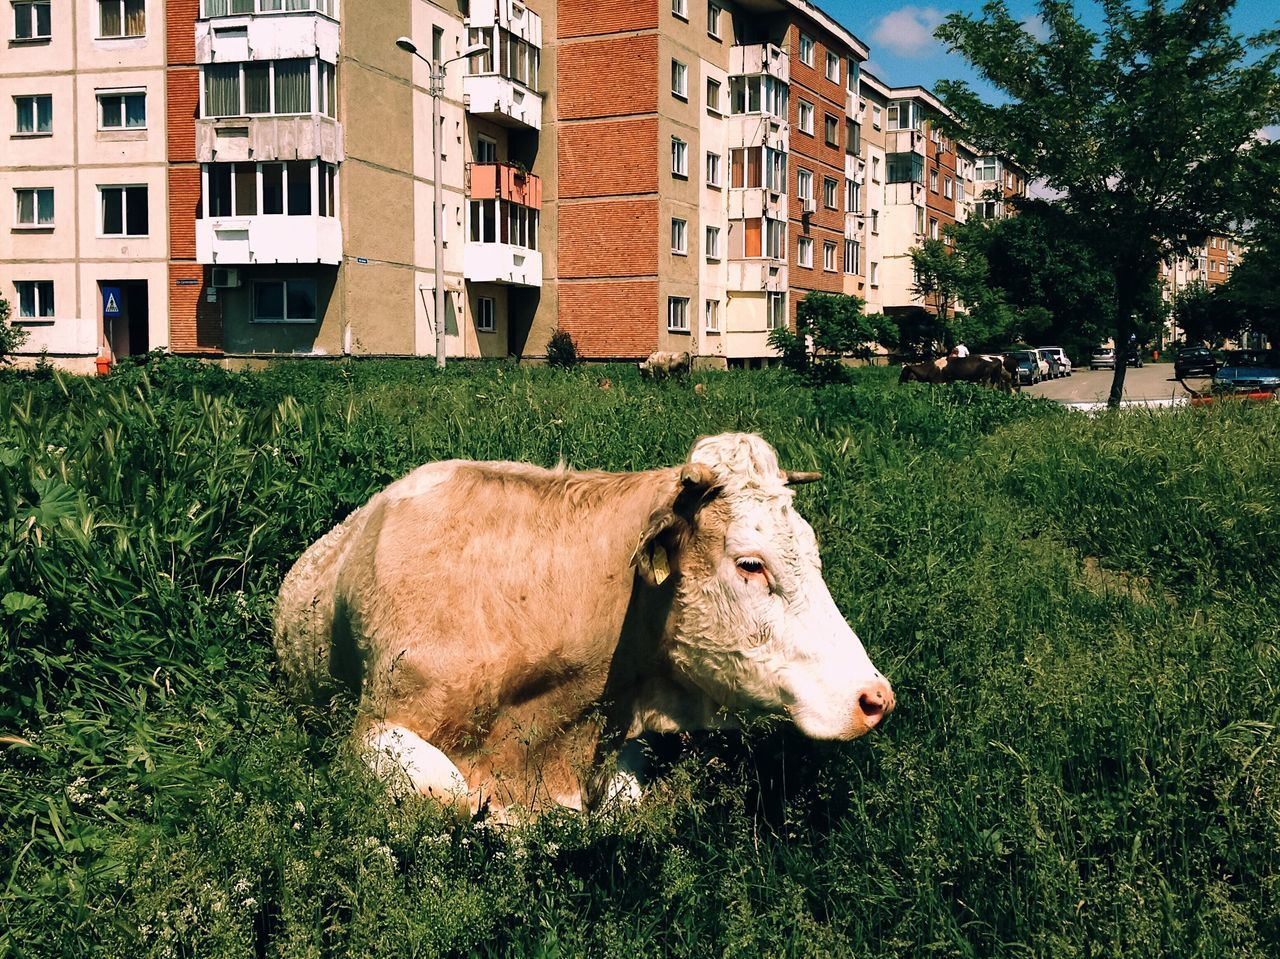 A place to rest... Domestic Animals Livestock Architecture Grass Animal Themes Farm Animal Building Exterior Cow Mammal Cattle Animals Of Eyeem Fresh On Eyeem  Made In Romania City Life Adapted To The City Vscocam My Favorite Photo Found On The Roll Details Of My Life Nature On Your Doorstep Nature City View  Cityscape Resting Street